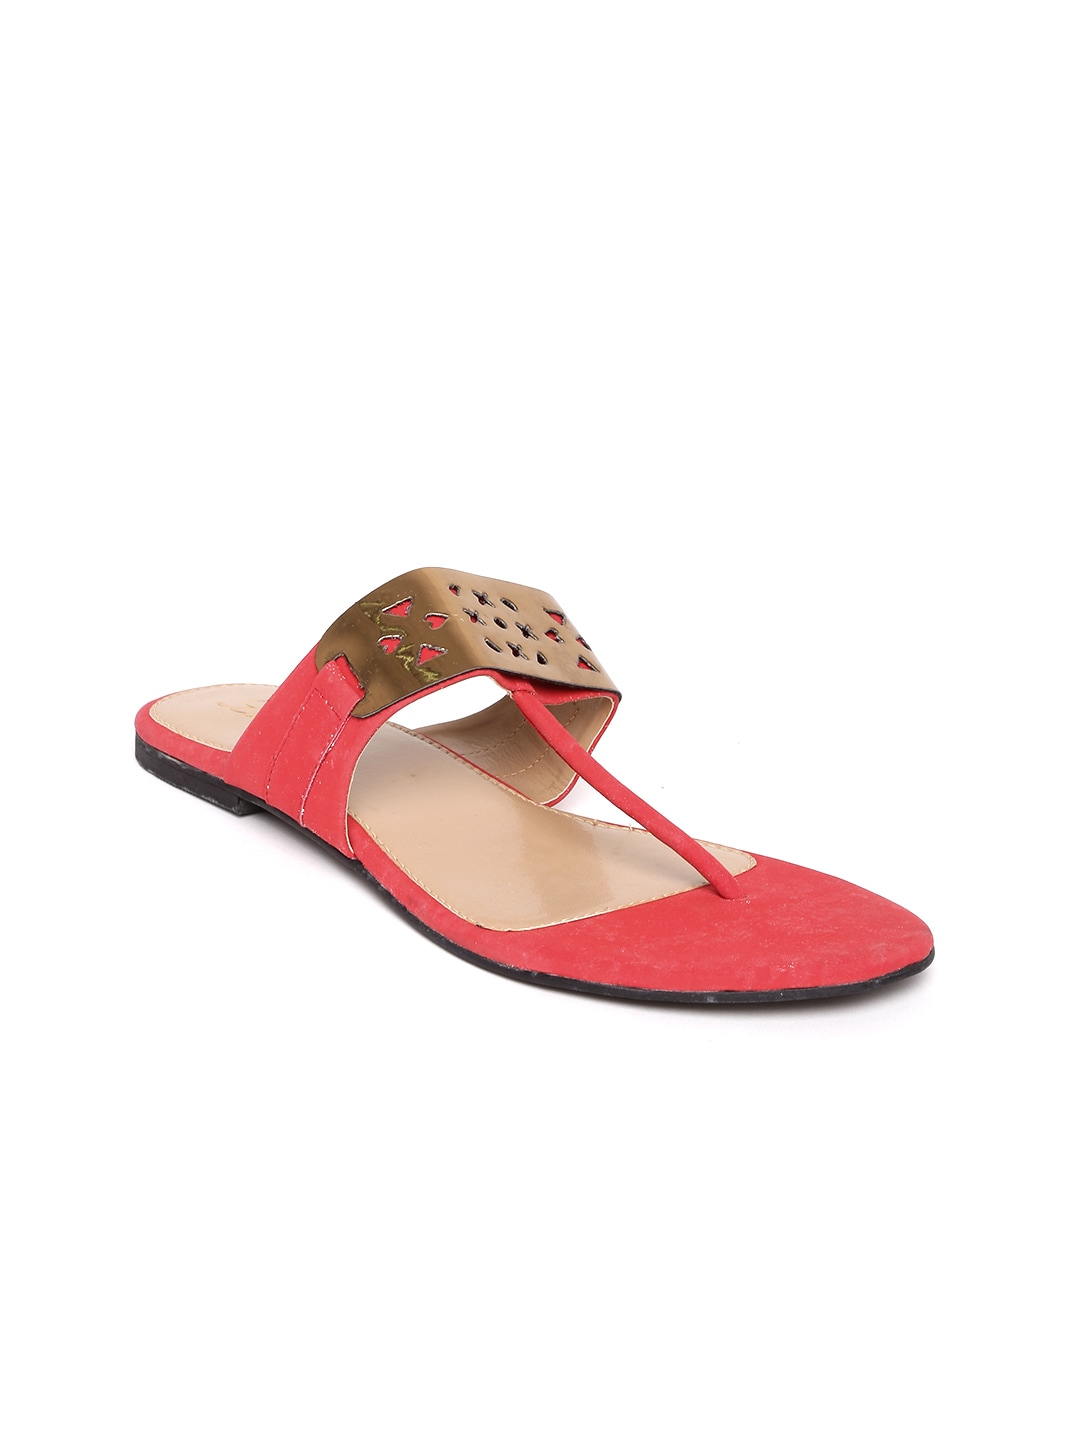 Lamere Women Gold-Toned & Red Flats